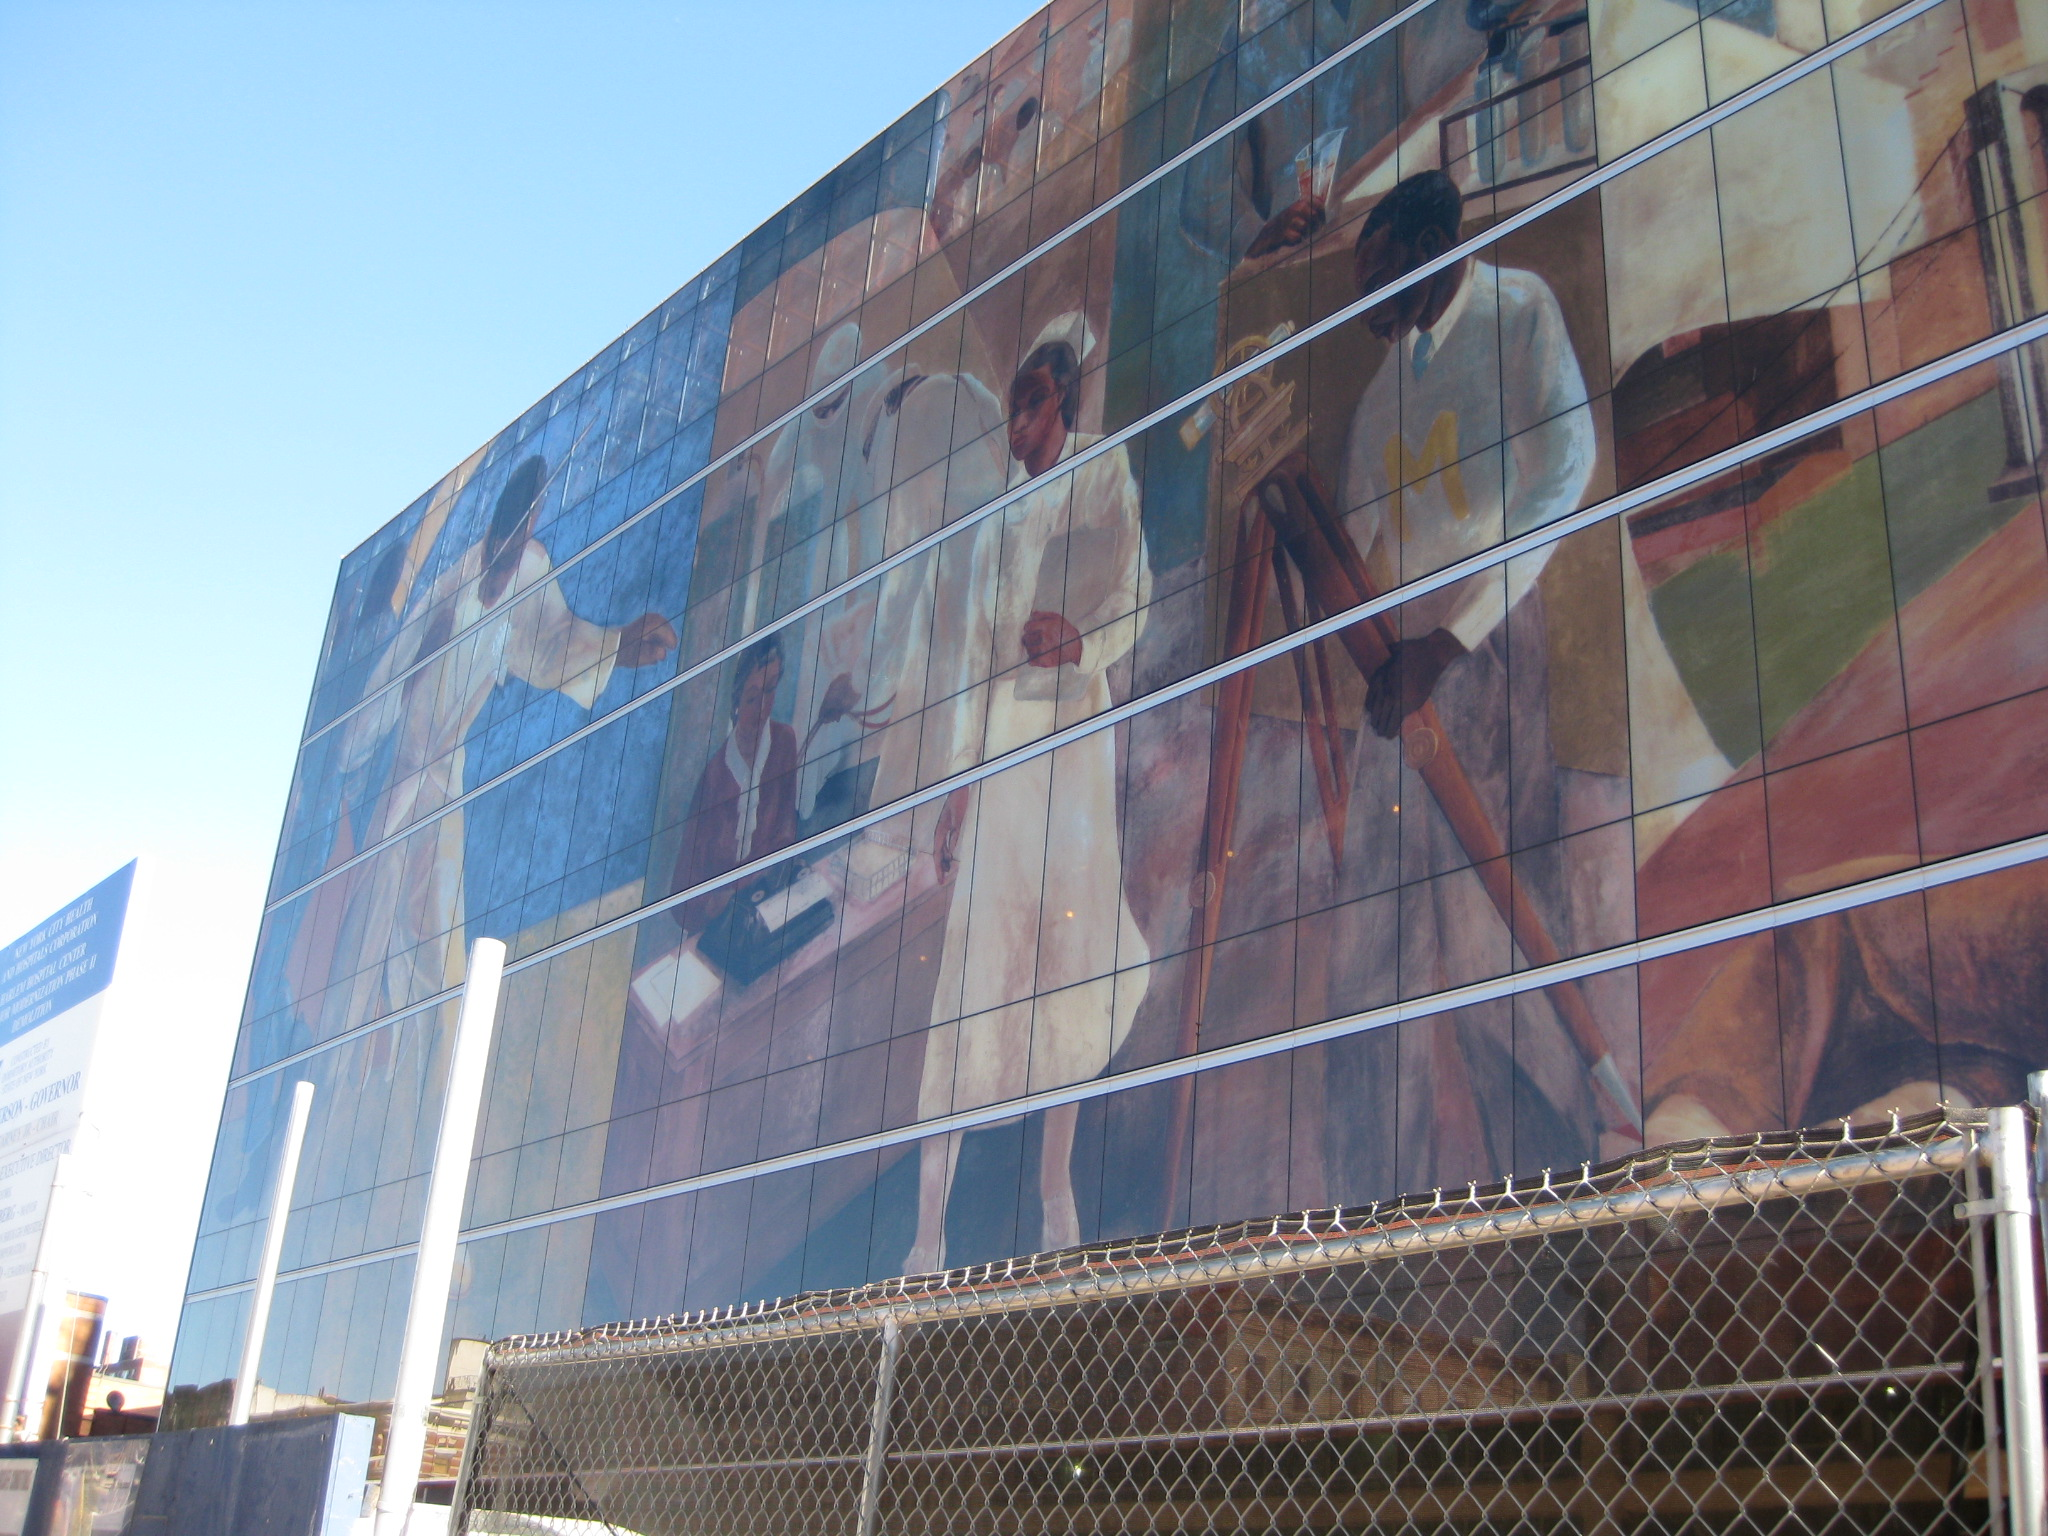 Mural at Harlem Hospital